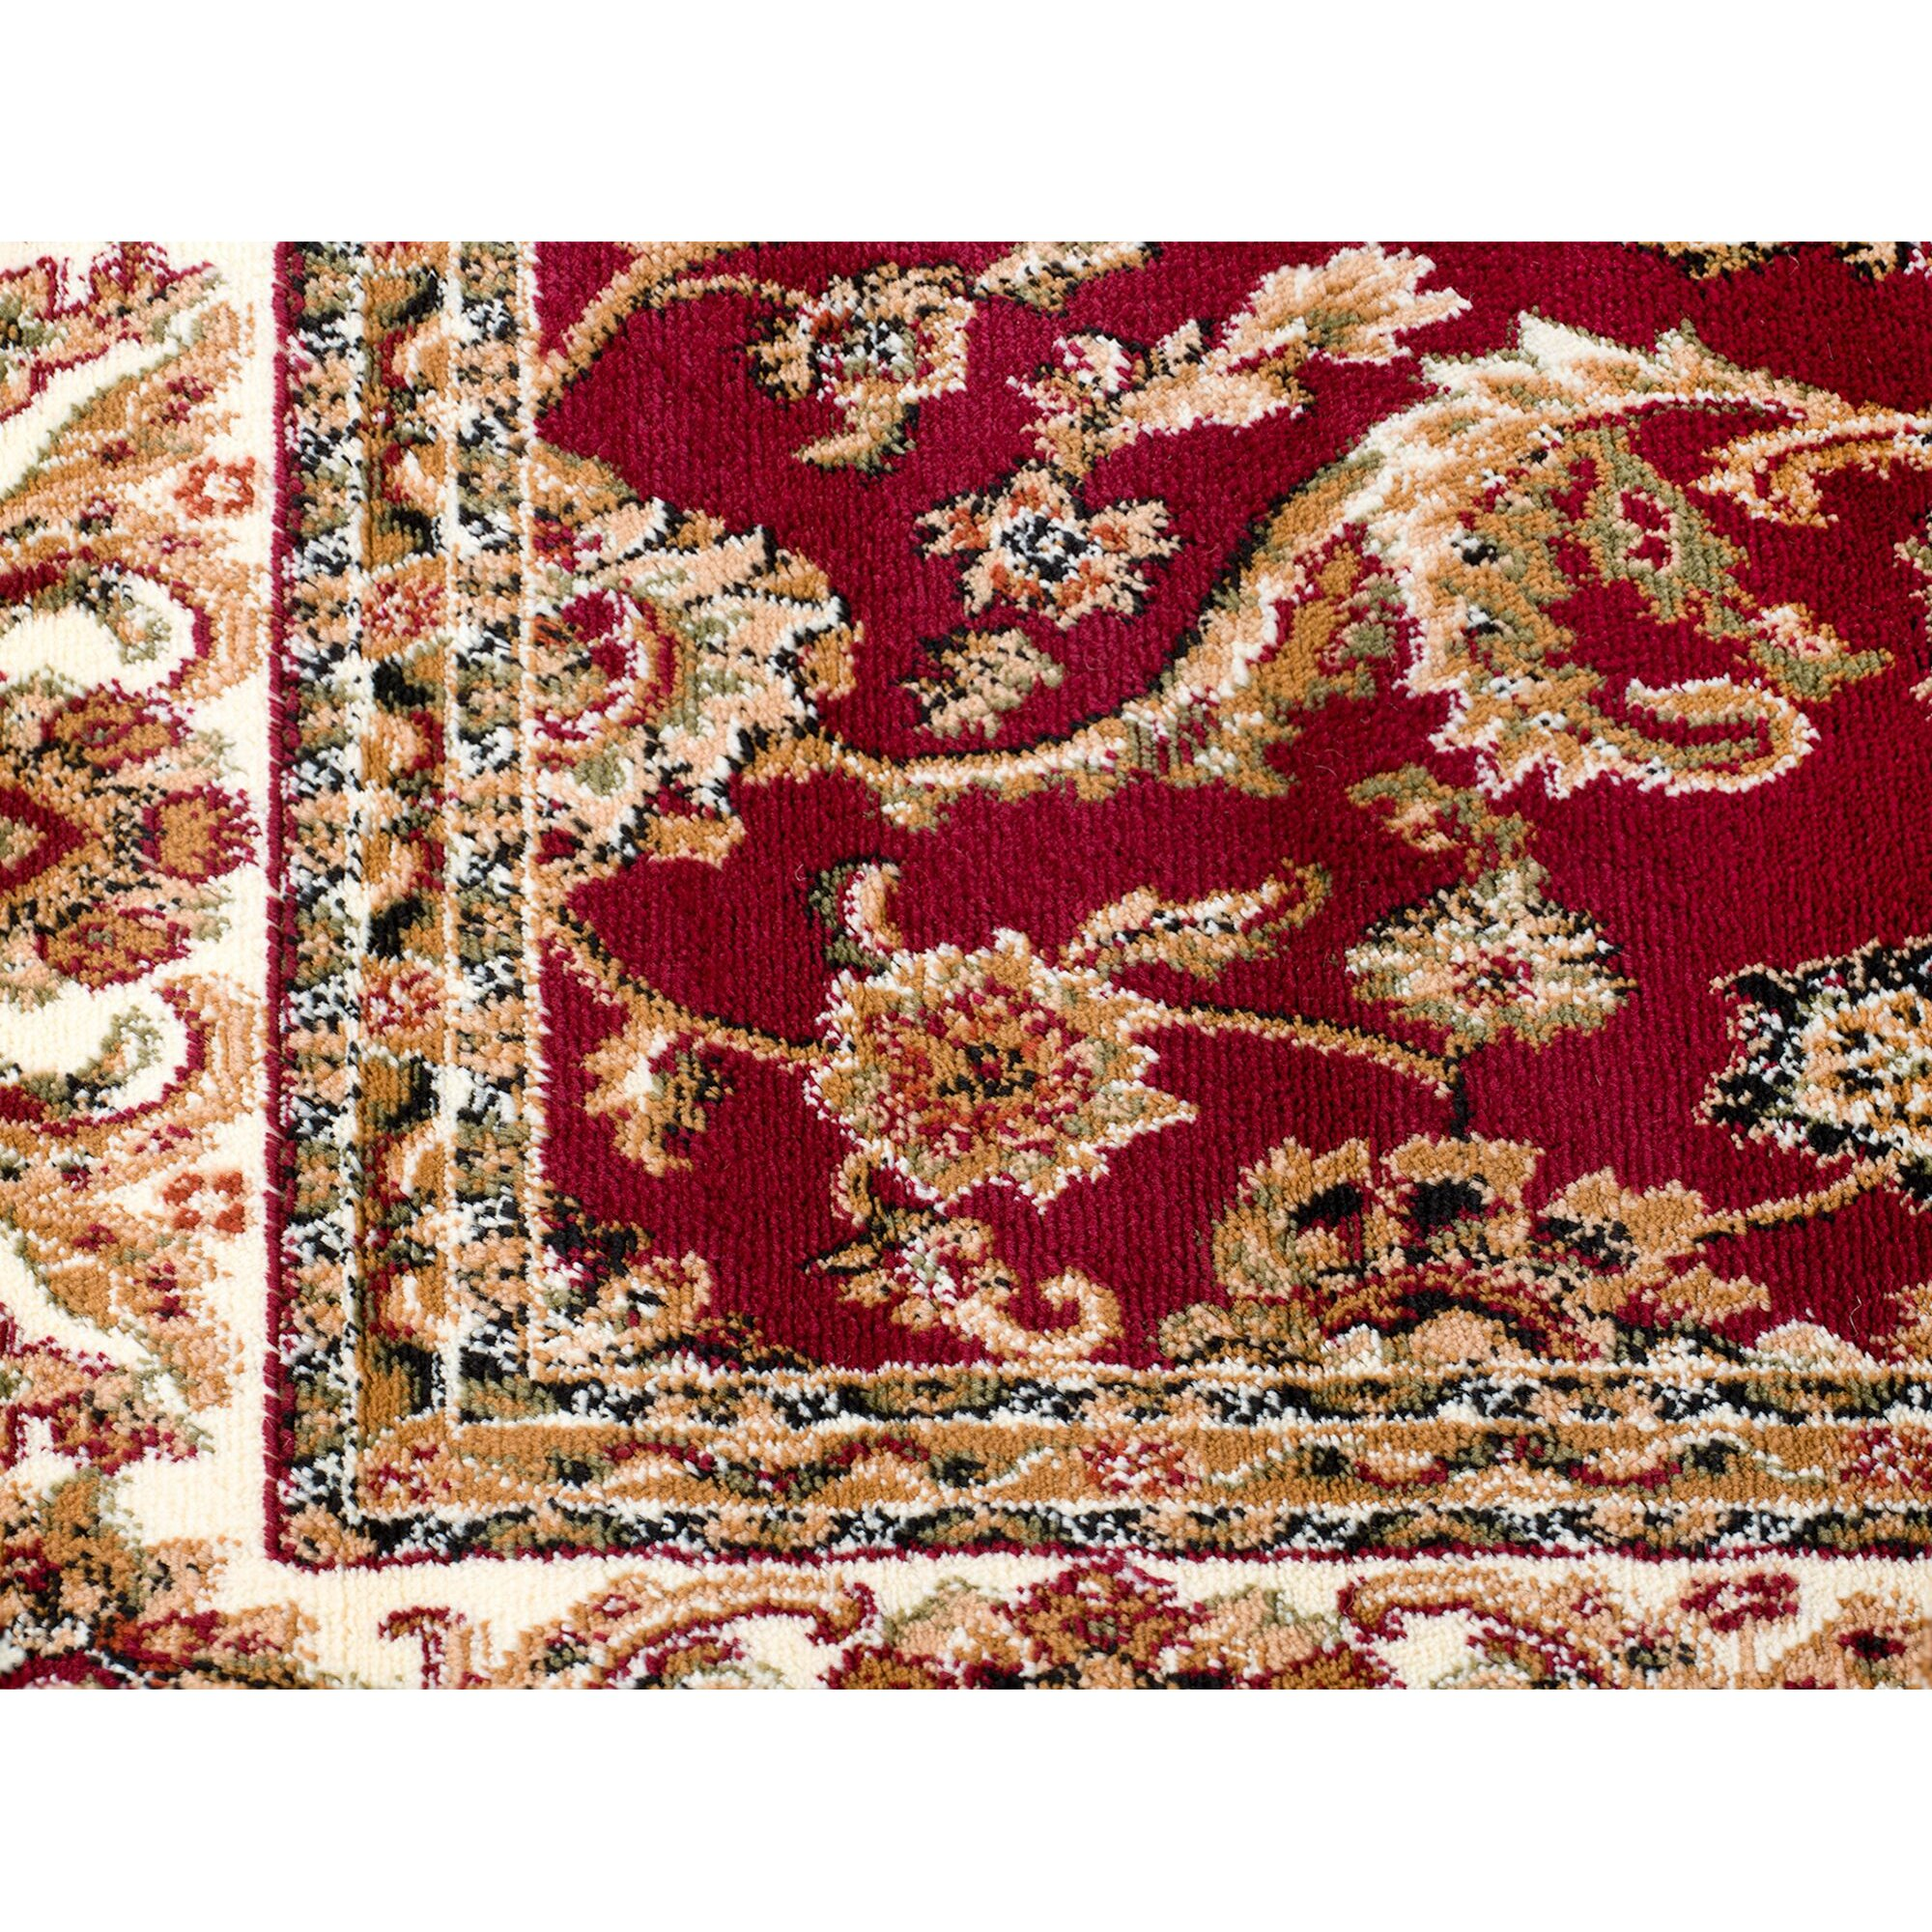 Rug And Decor Inc. Summit Brown/Burgundy Area Rug